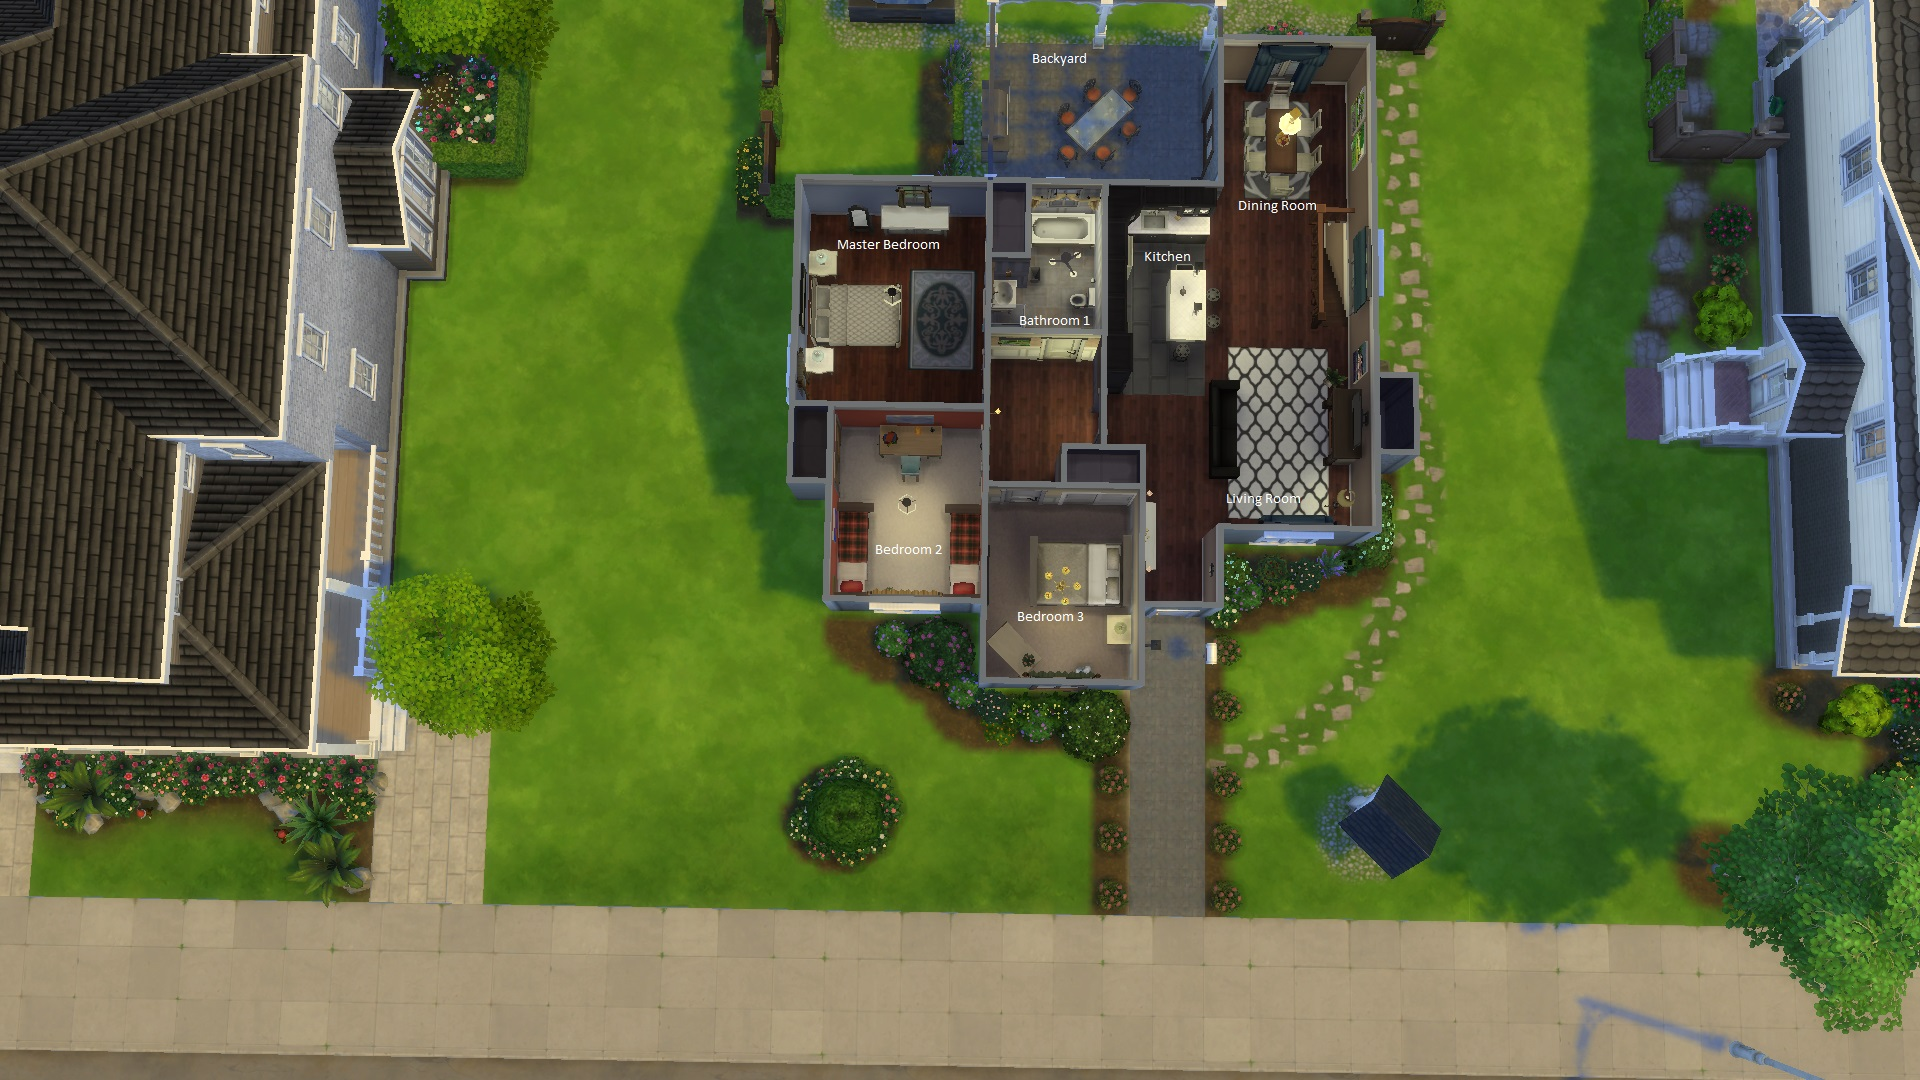 Mod The Sims Suburban Family Home 3 1 Bed 2 Bath